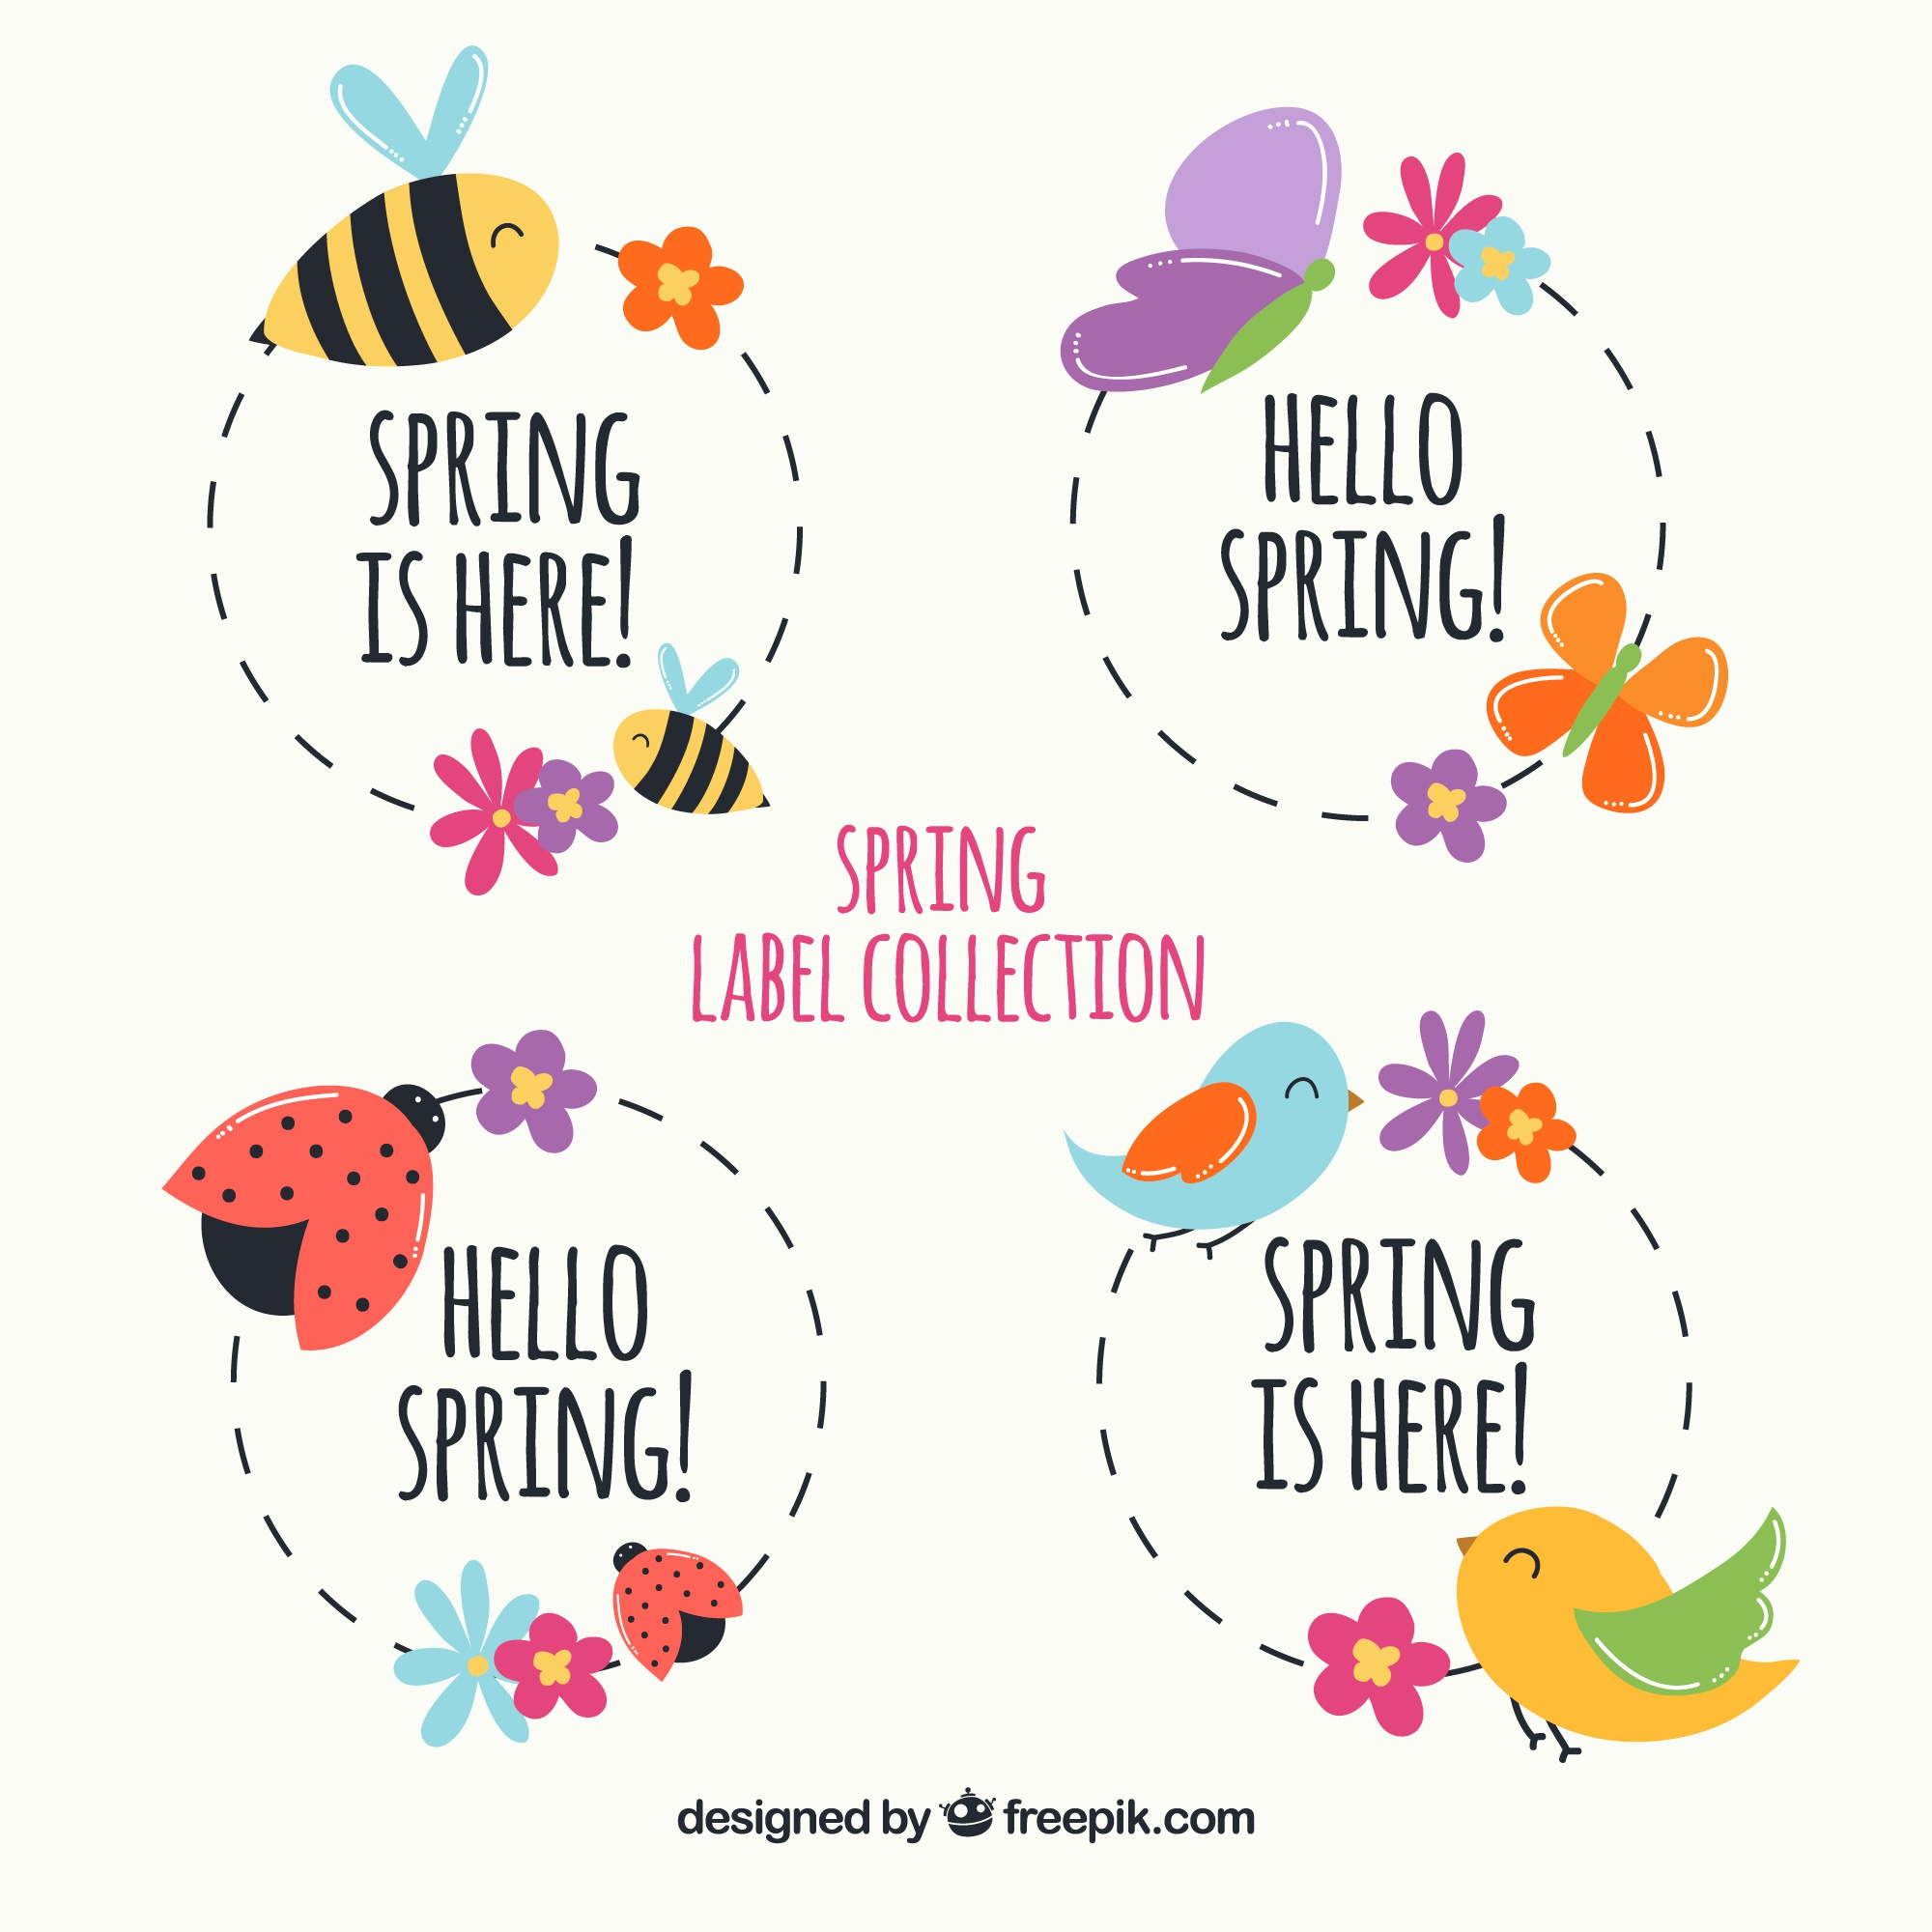 spring vectors  photos and psd files free download free happy birthday clipart with numbers free happy birthday clipart dog